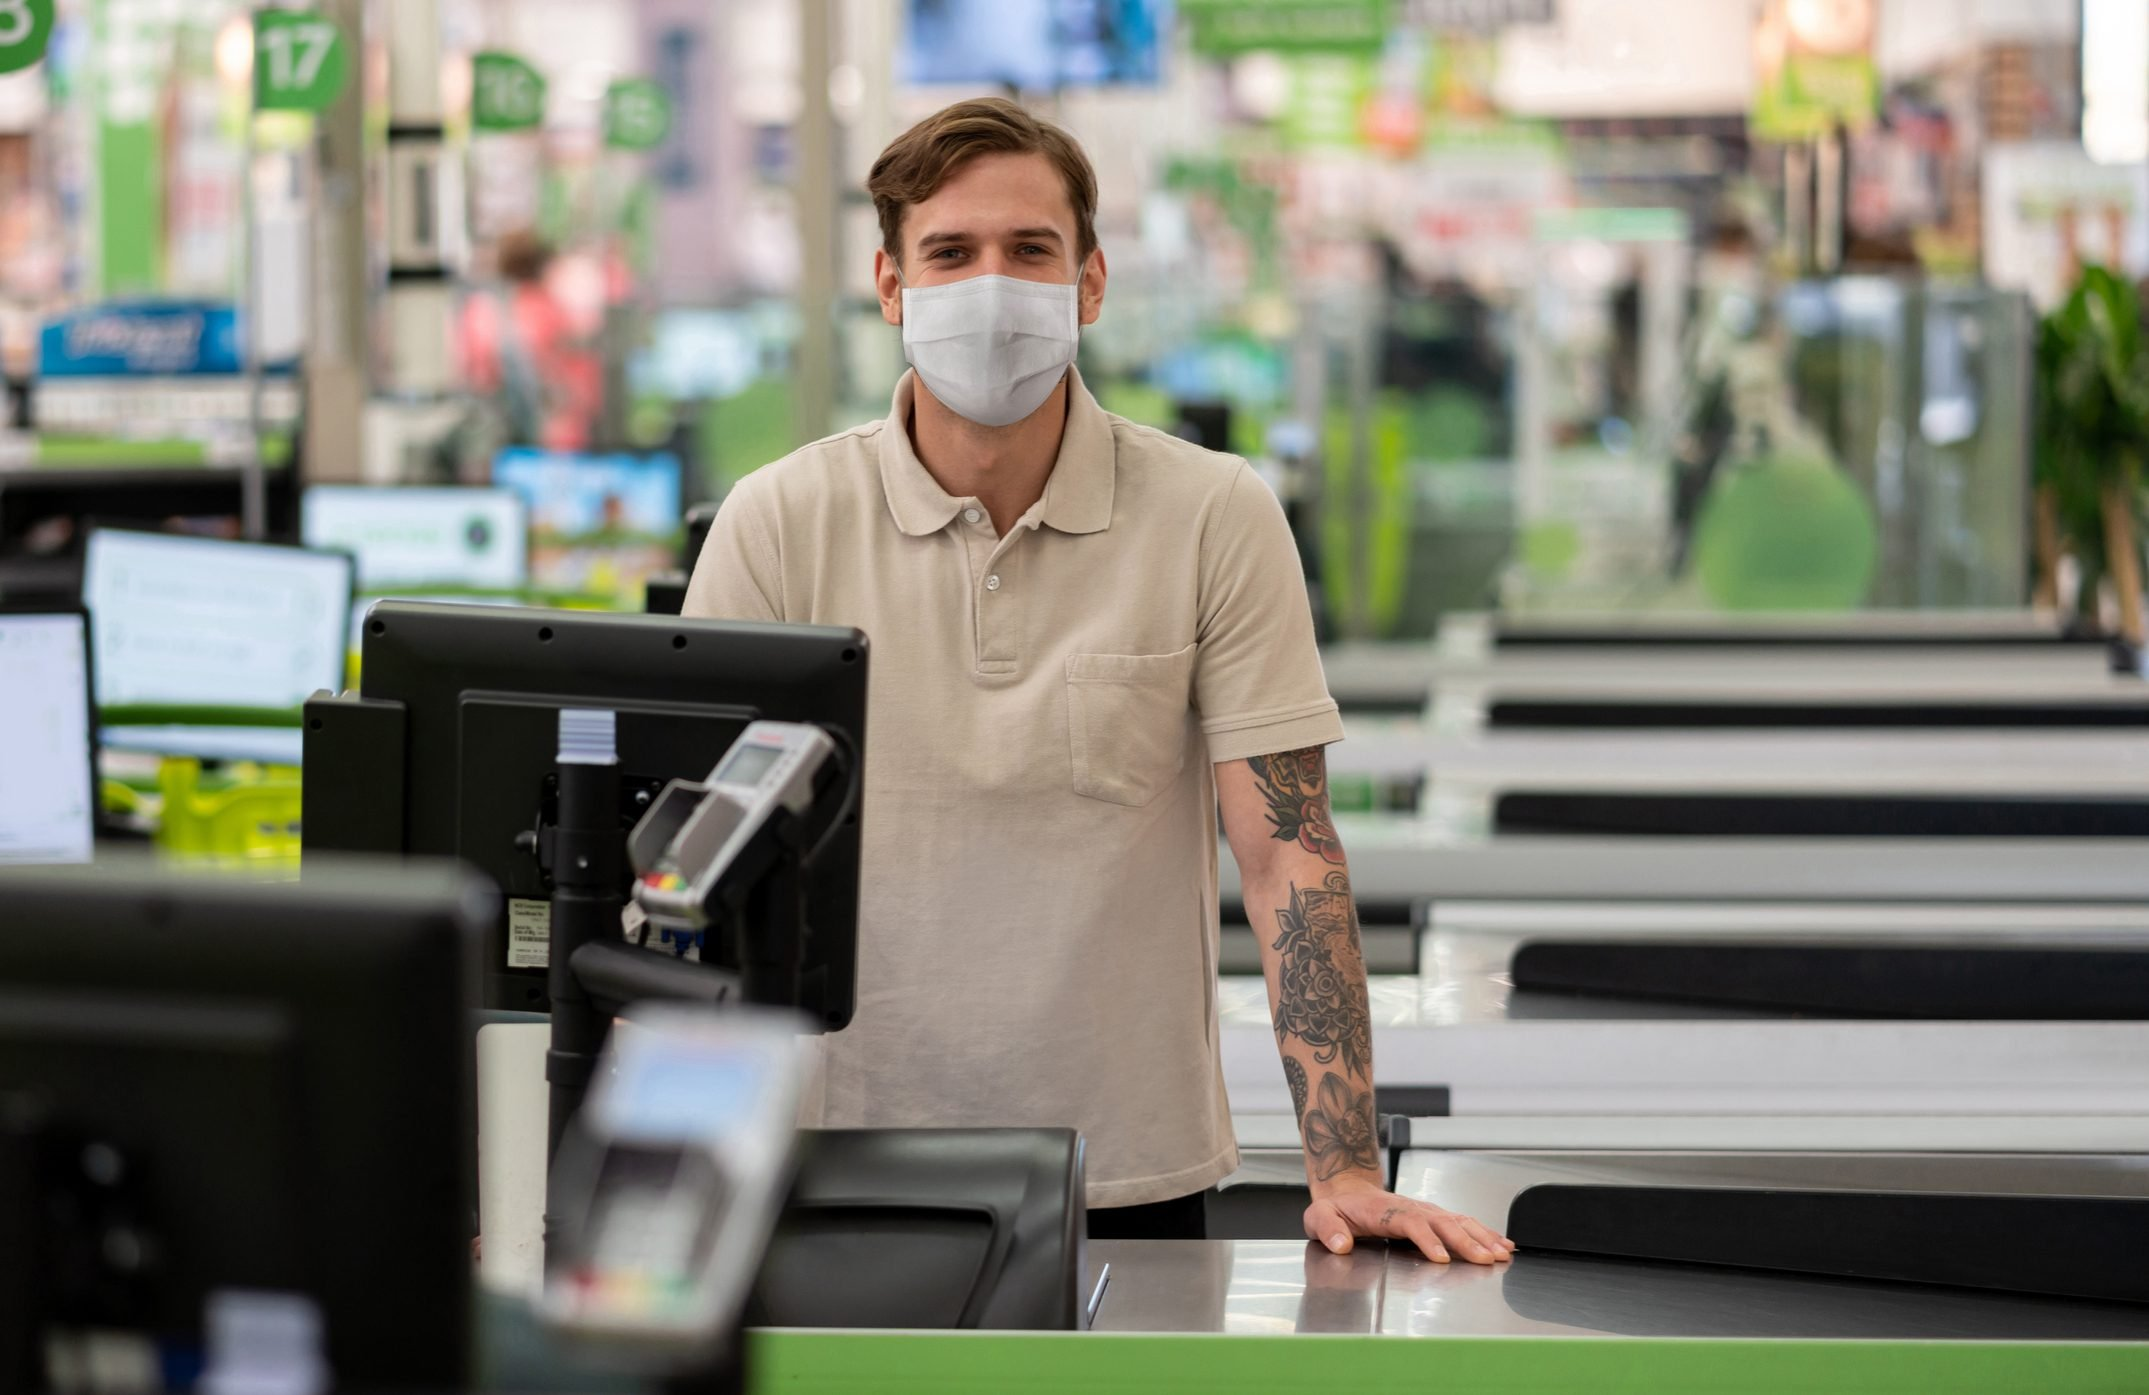 Cashier working at a supermarket wearing a facemask